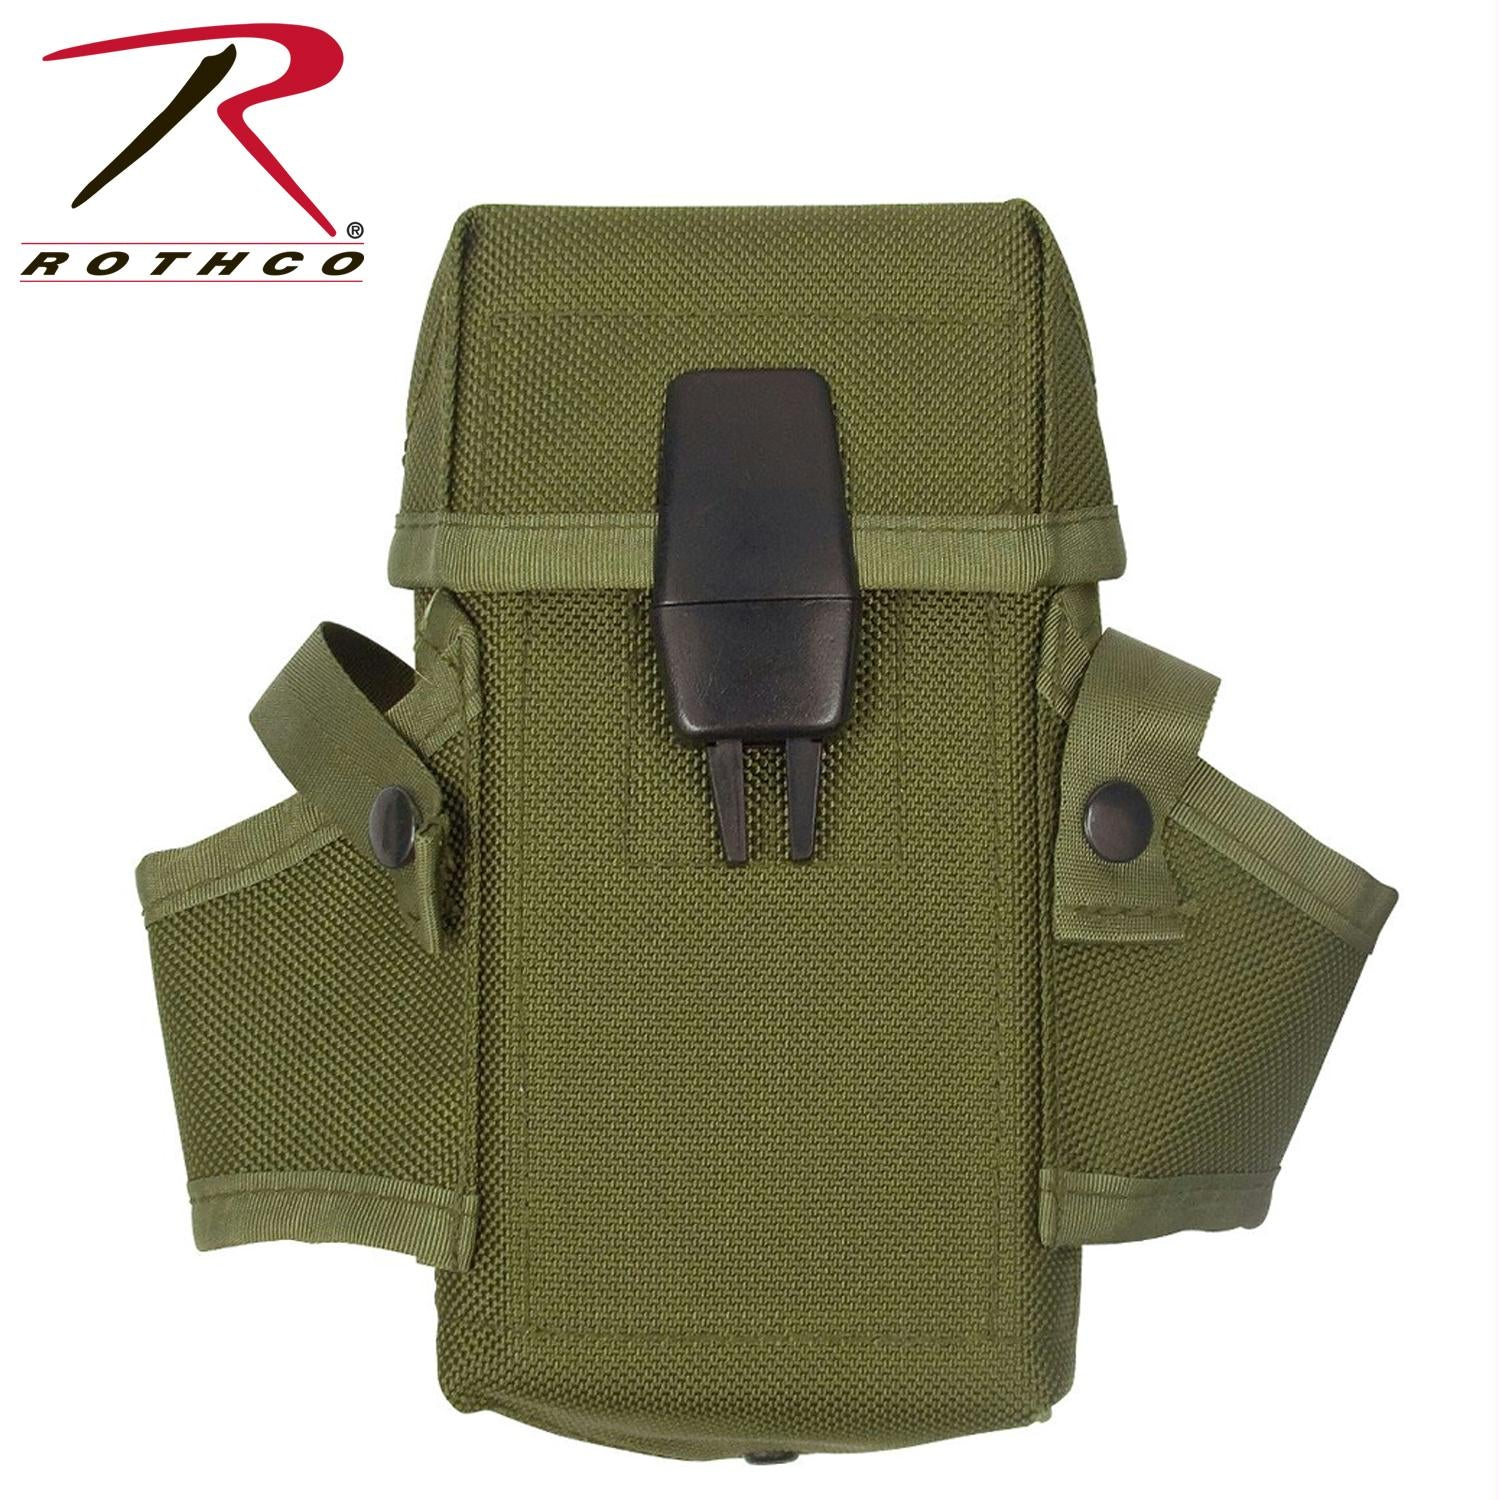 Rothco M-16 Clip Pouches - Olive Drab